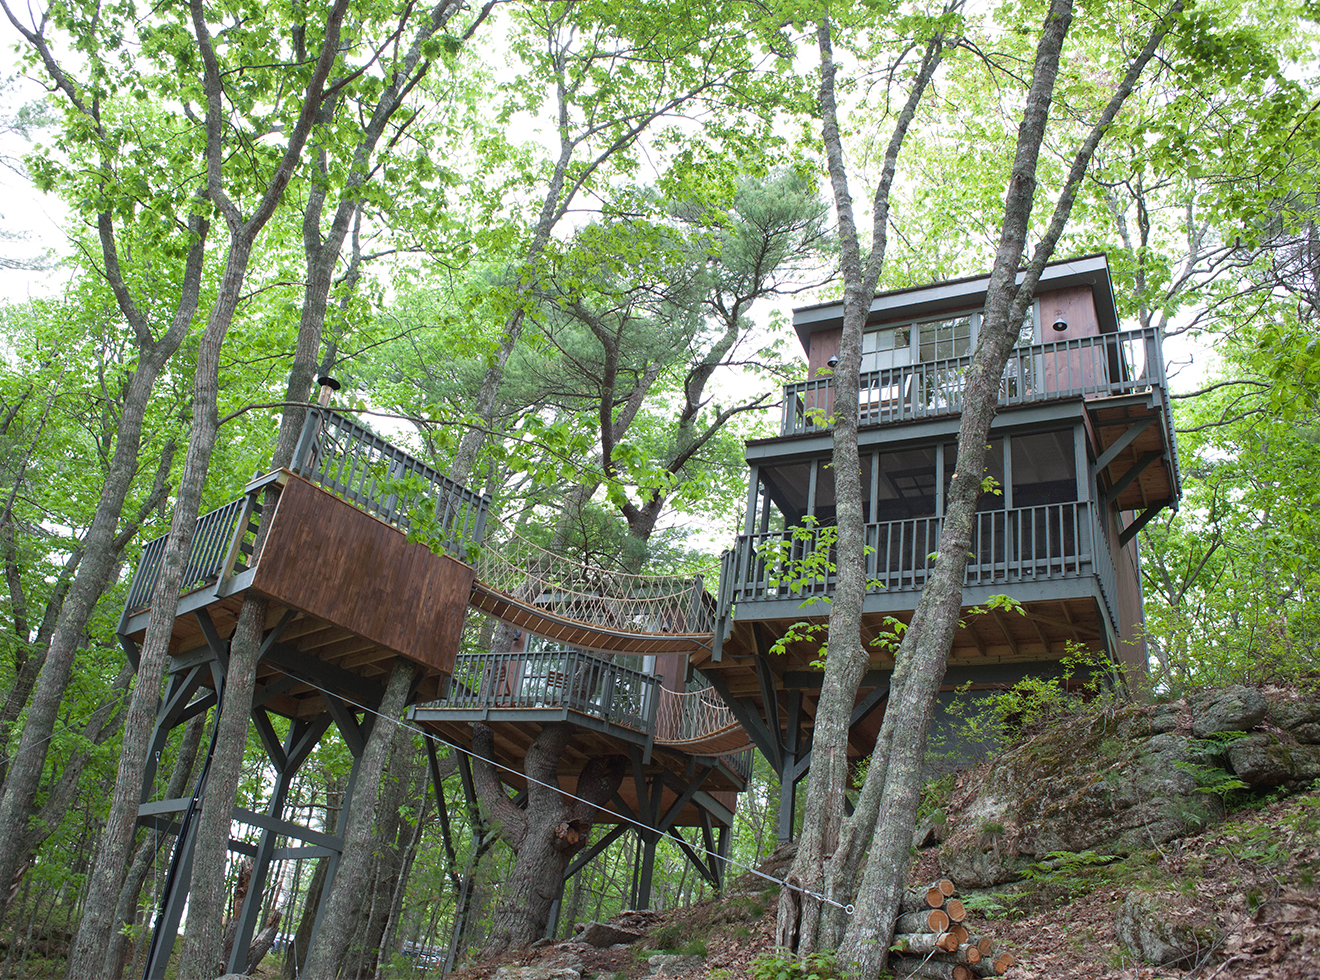 10 Airbnbs That Give You Fantastic Views of Fall Foliage